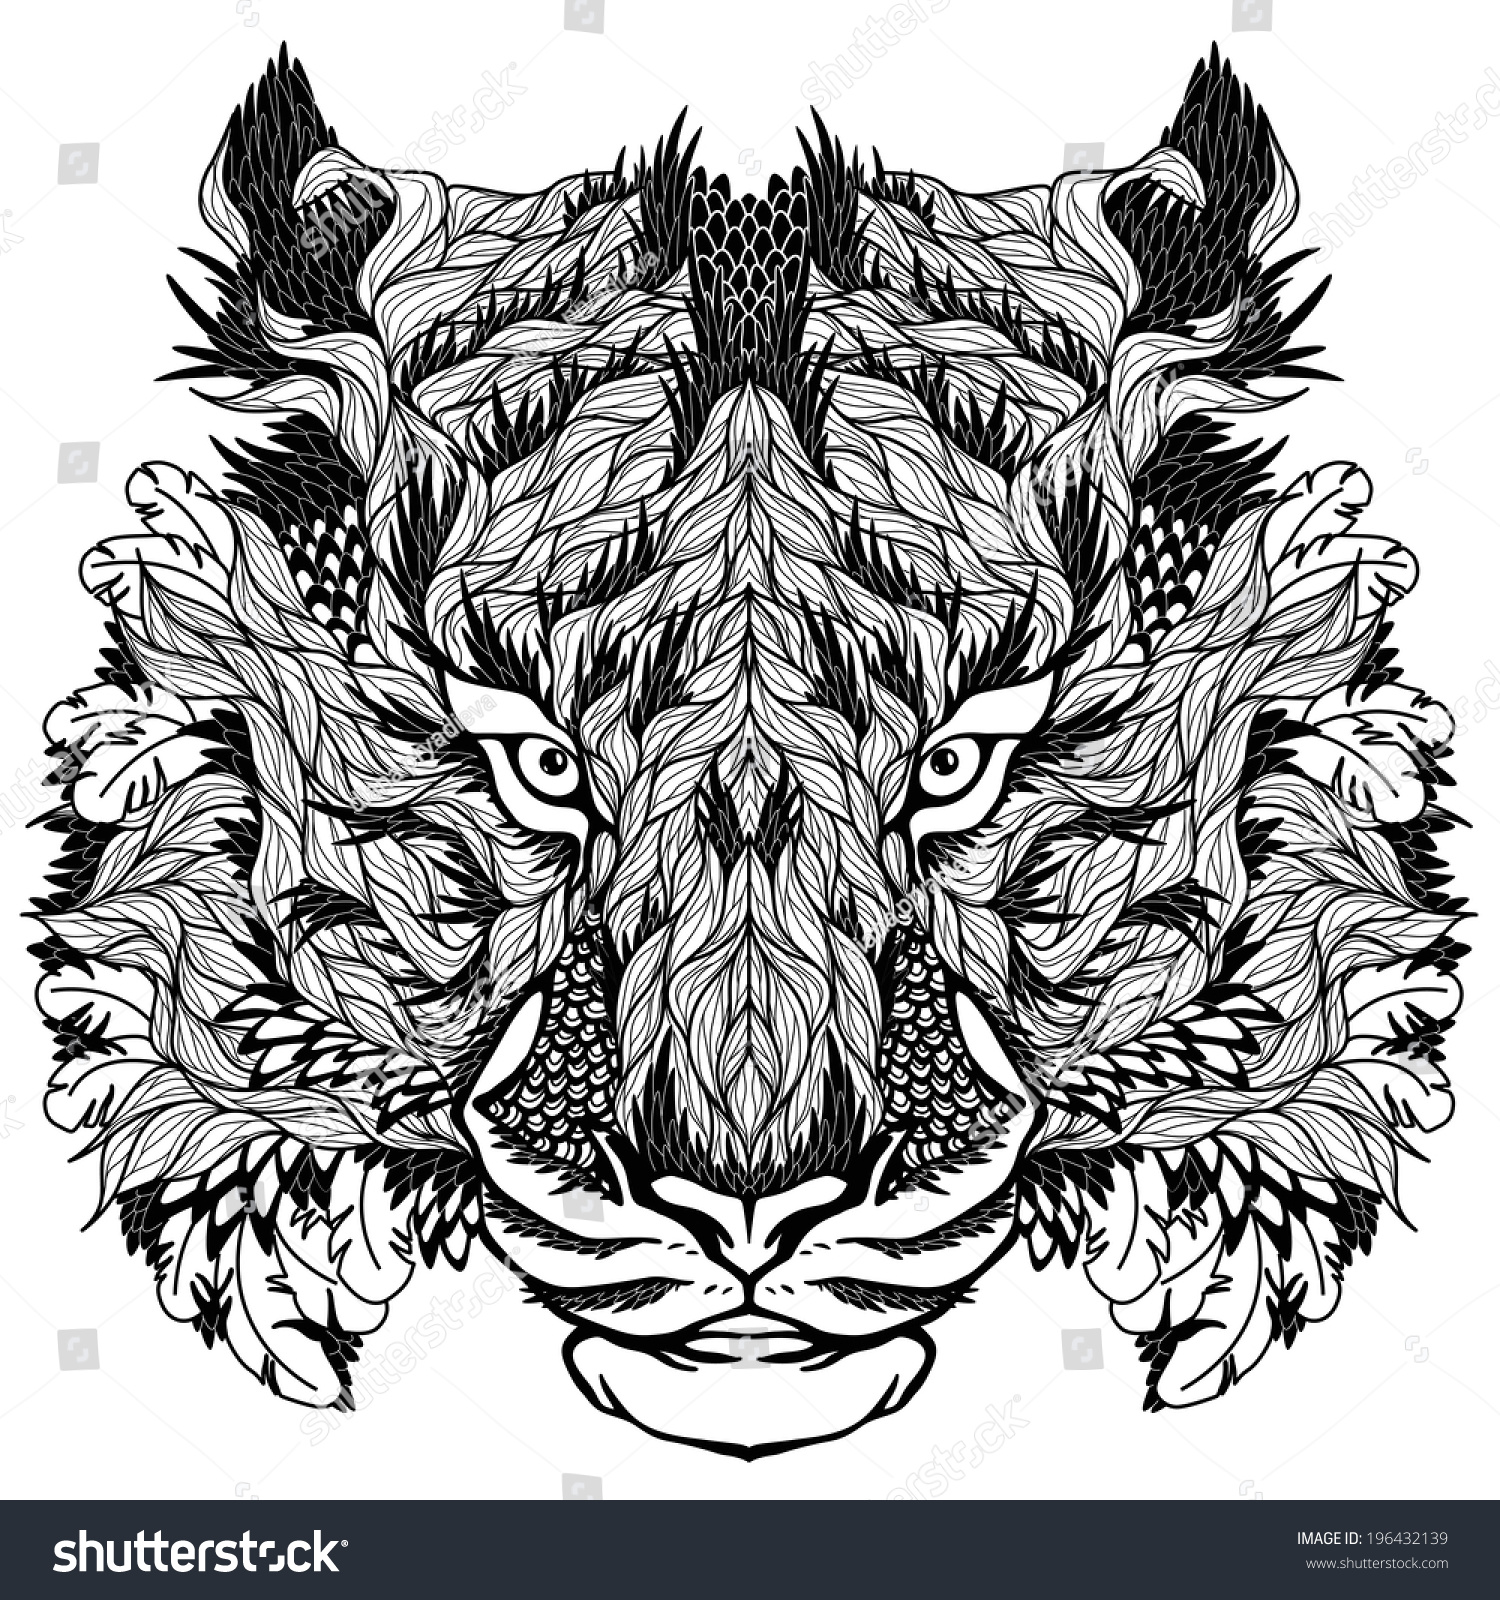 Psychedelic tiger tattoo - photo#2